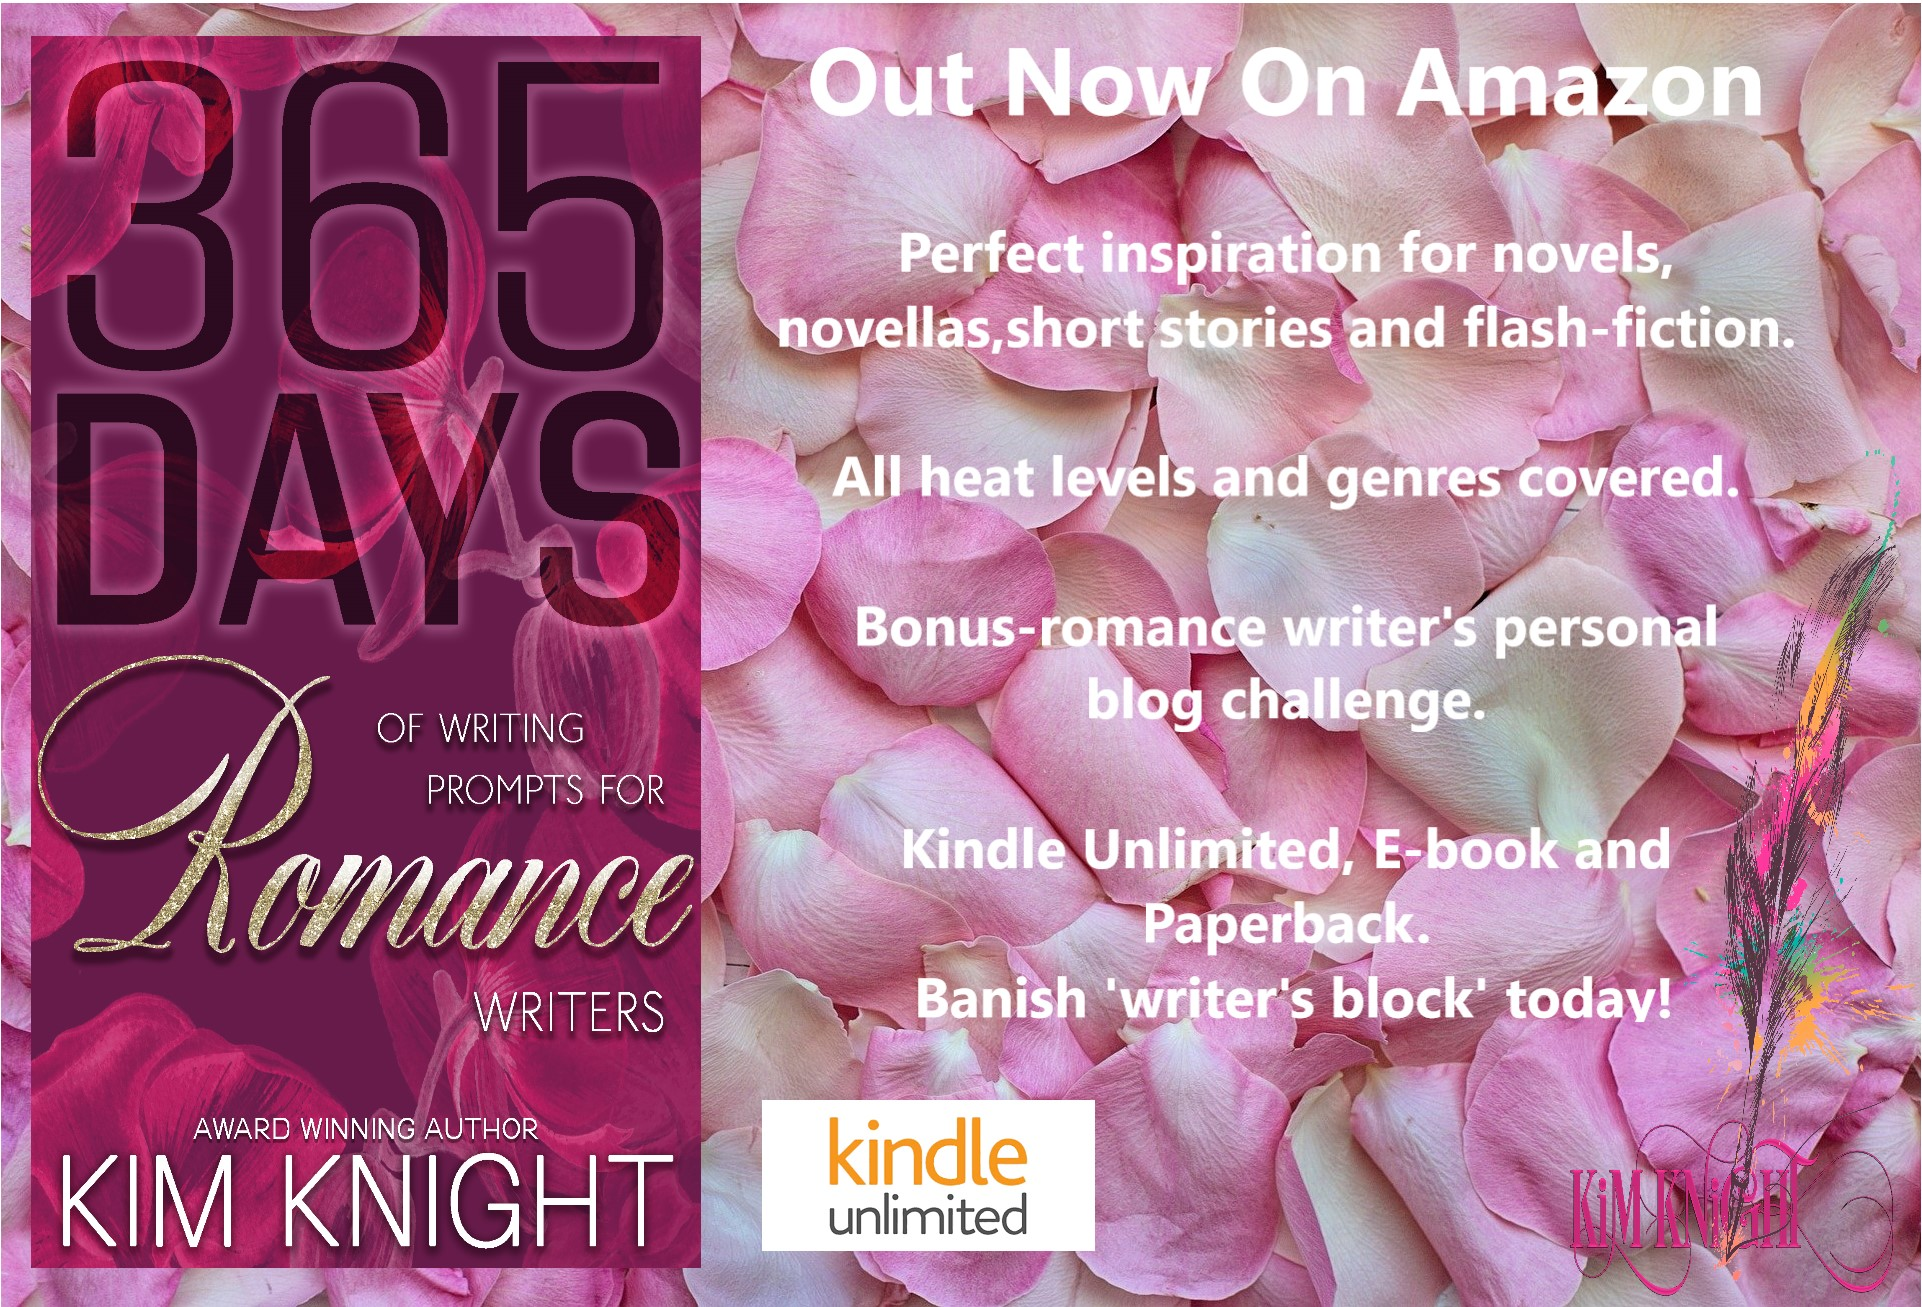 365 Days of Writing Prompts for Romance Writers banner